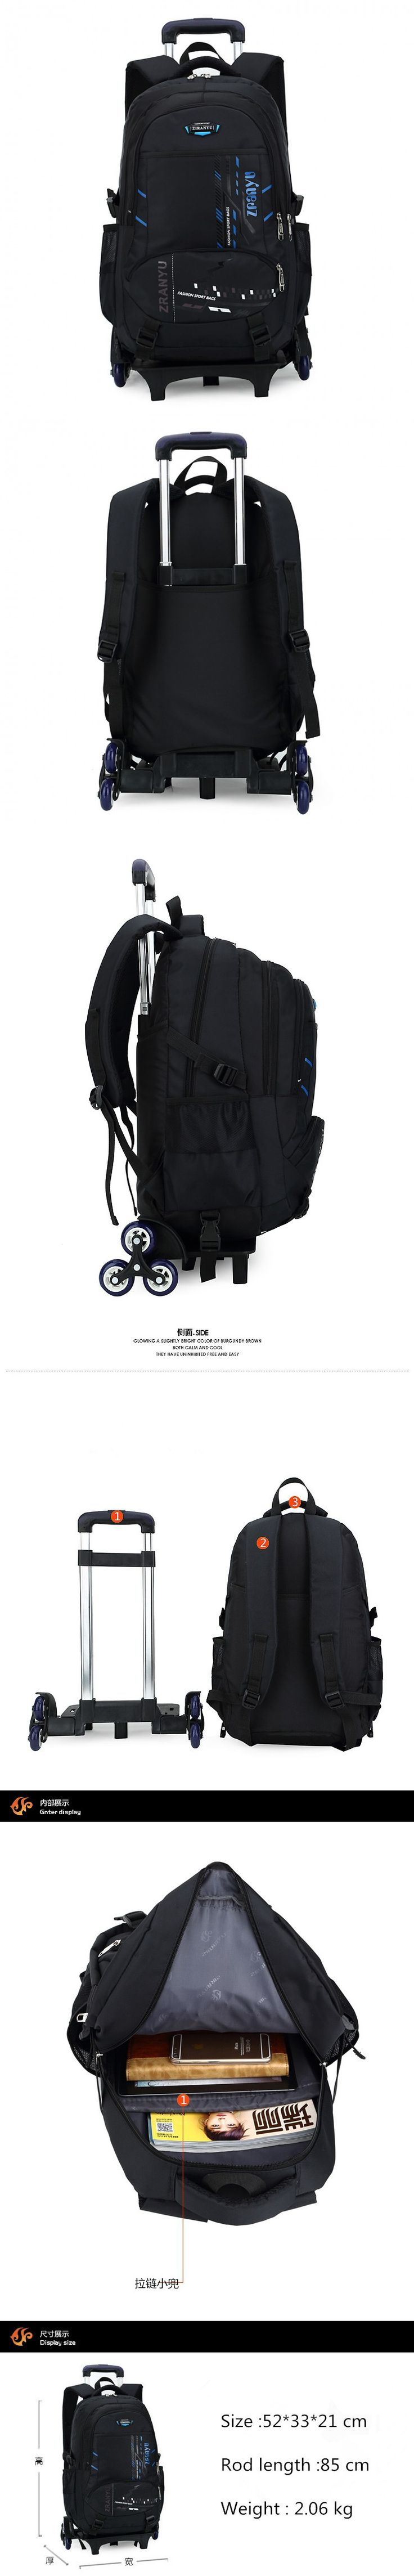 Latest Removable Children School Bags With Wheels Stairs Kids Big boy Trolley Schoolbag Luggage Book Bags Wheeled Backpack $82.5